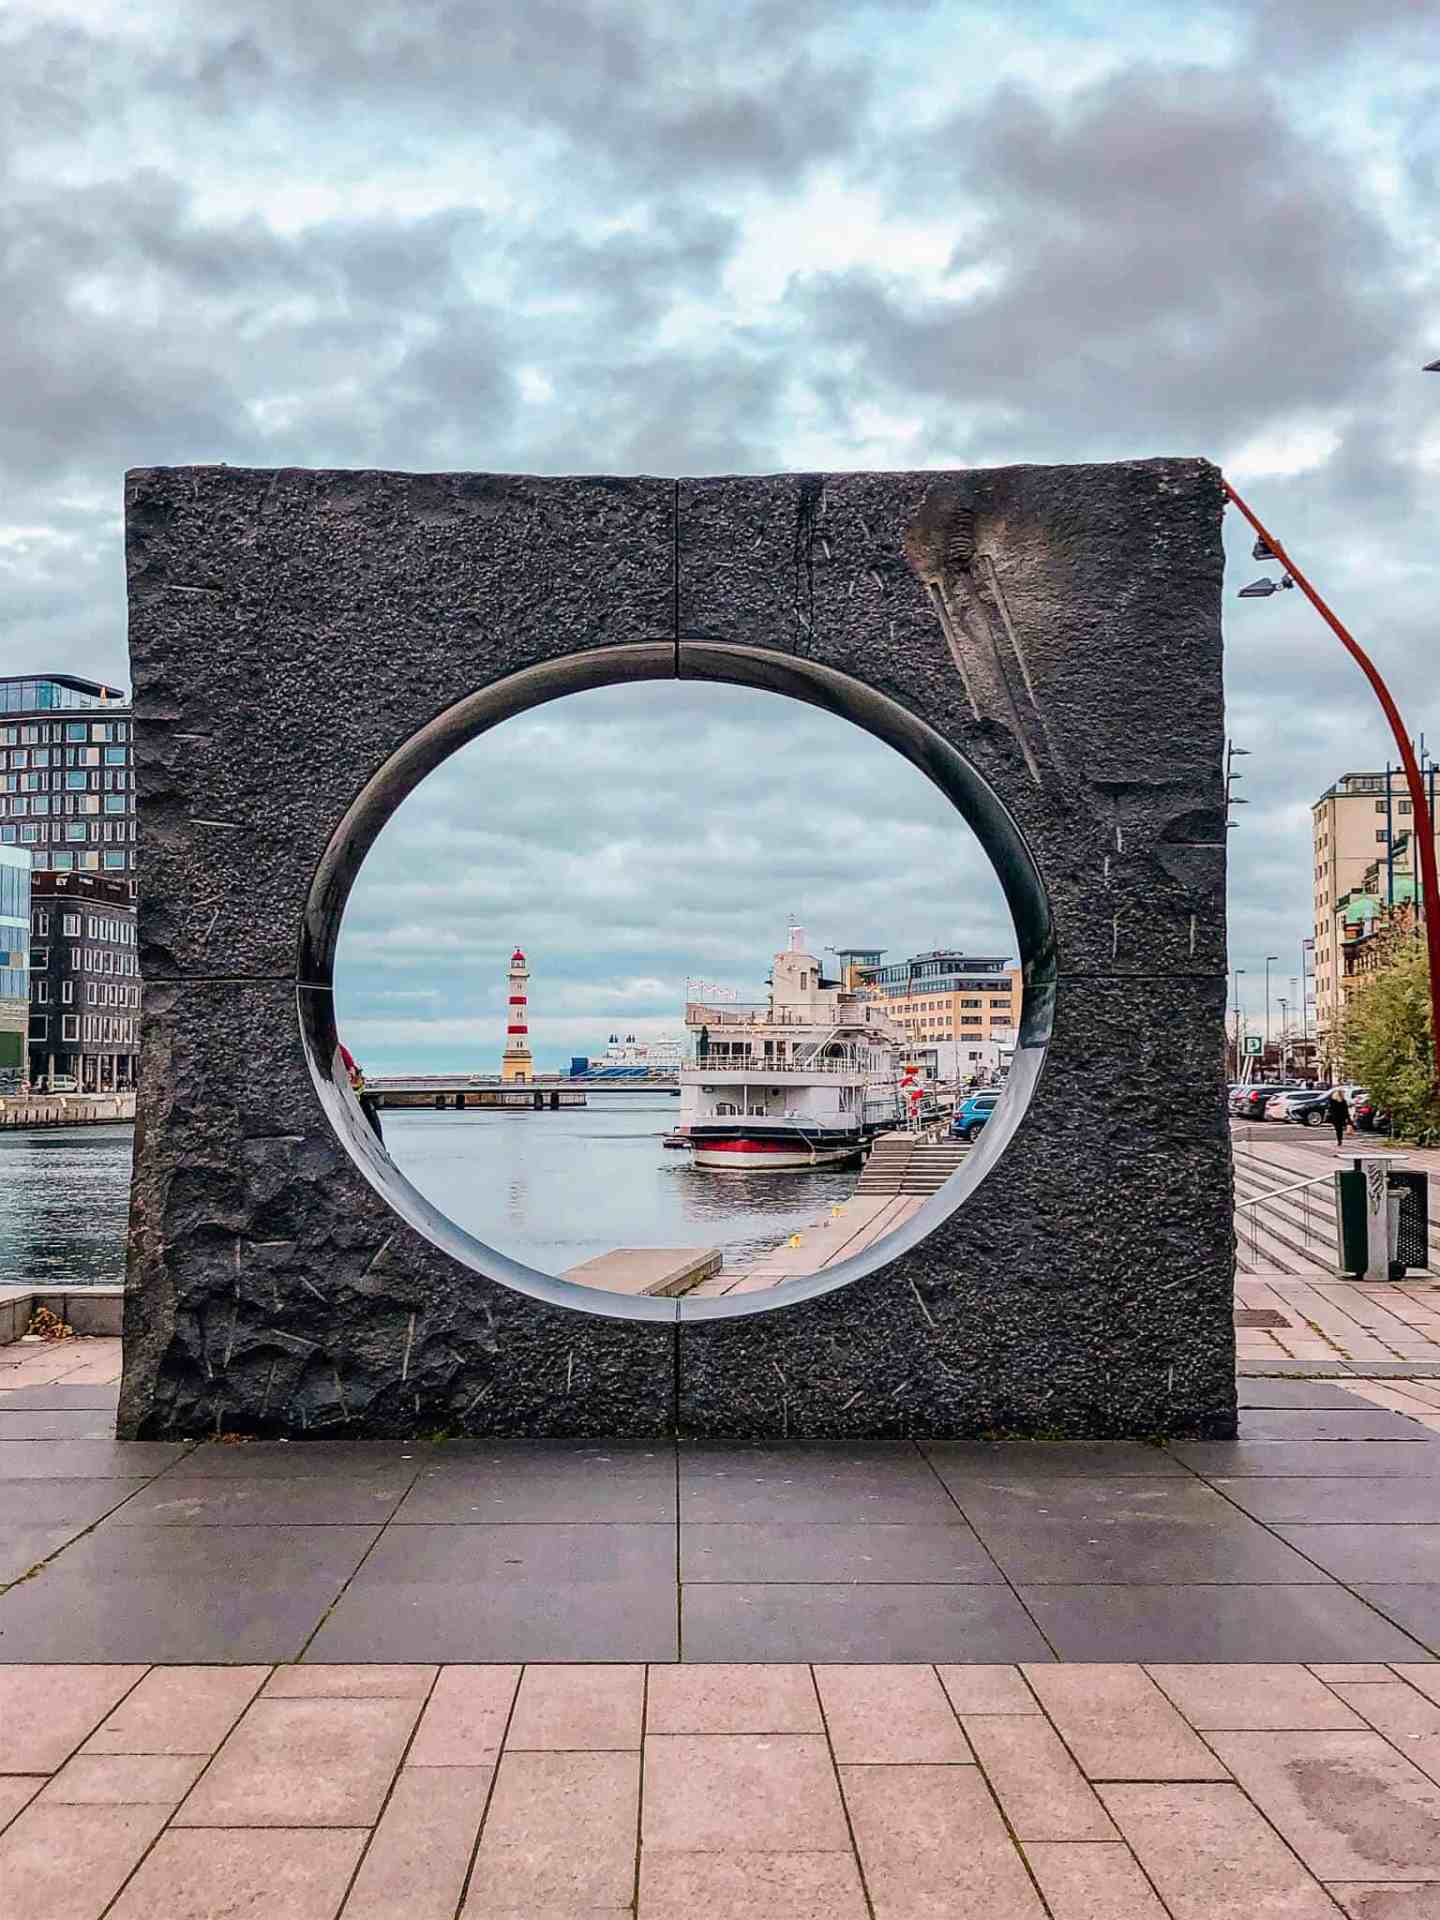 Circle in the middle of a stone square with a boat and lighthouse in the background